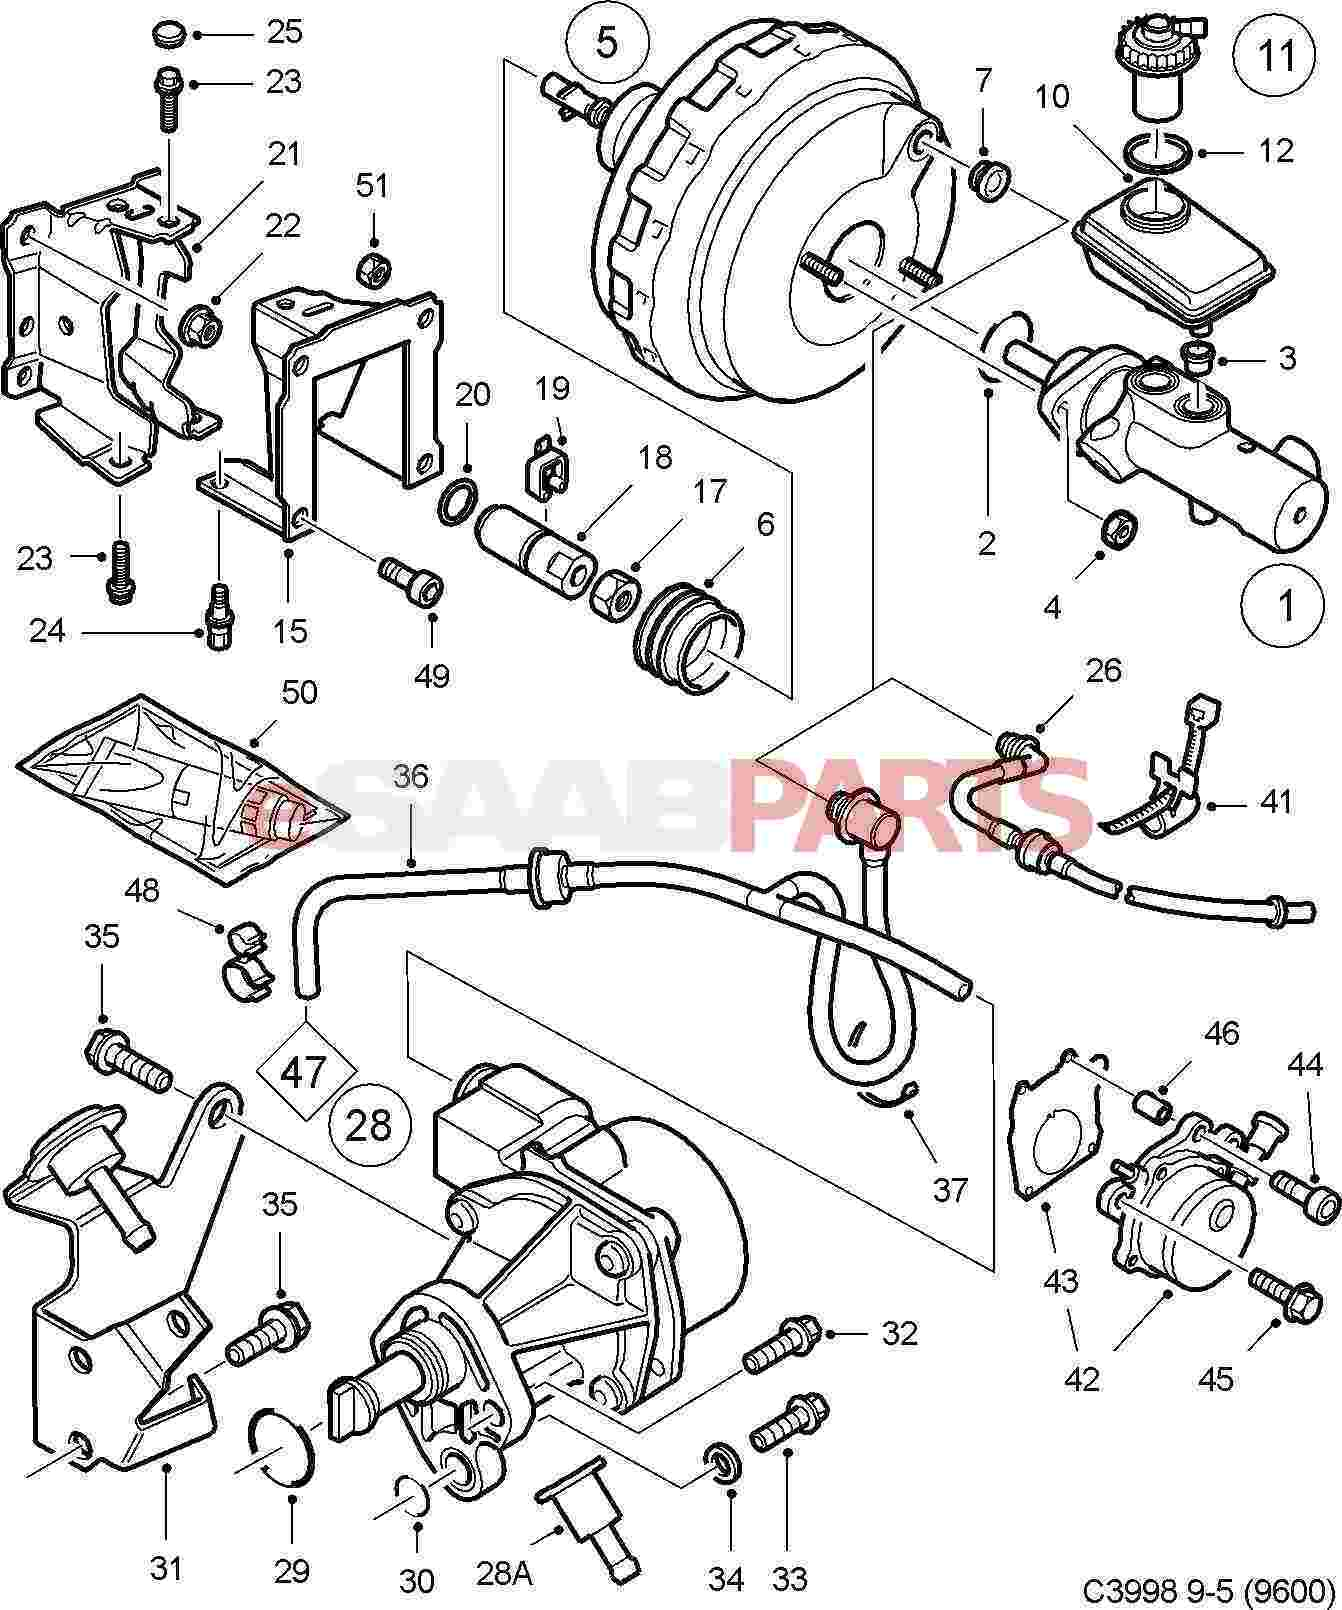 hight resolution of esaabparts com saab 9 5 9600 u003e brakes parts u003e brake vacuumesaabparts